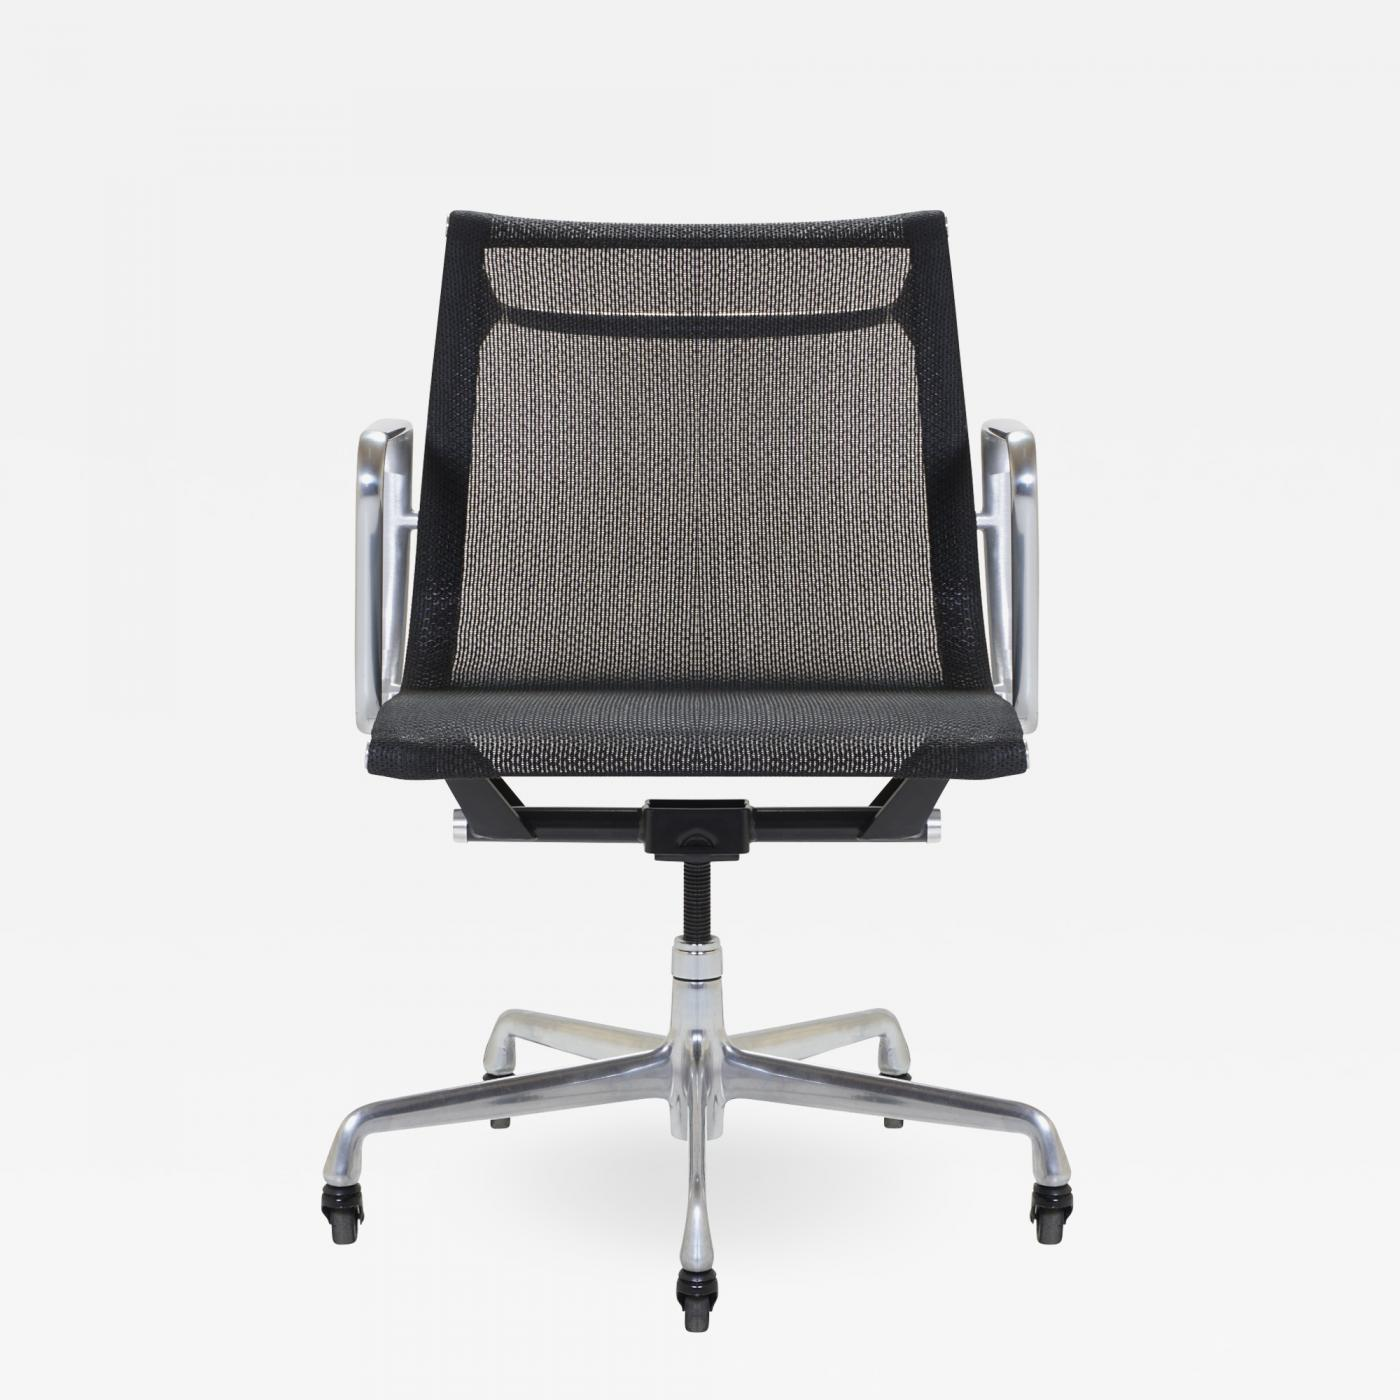 Charles & Ray Eames - Aluminum Group Management Chair by Charles & Ray  Eames for Herman Miller